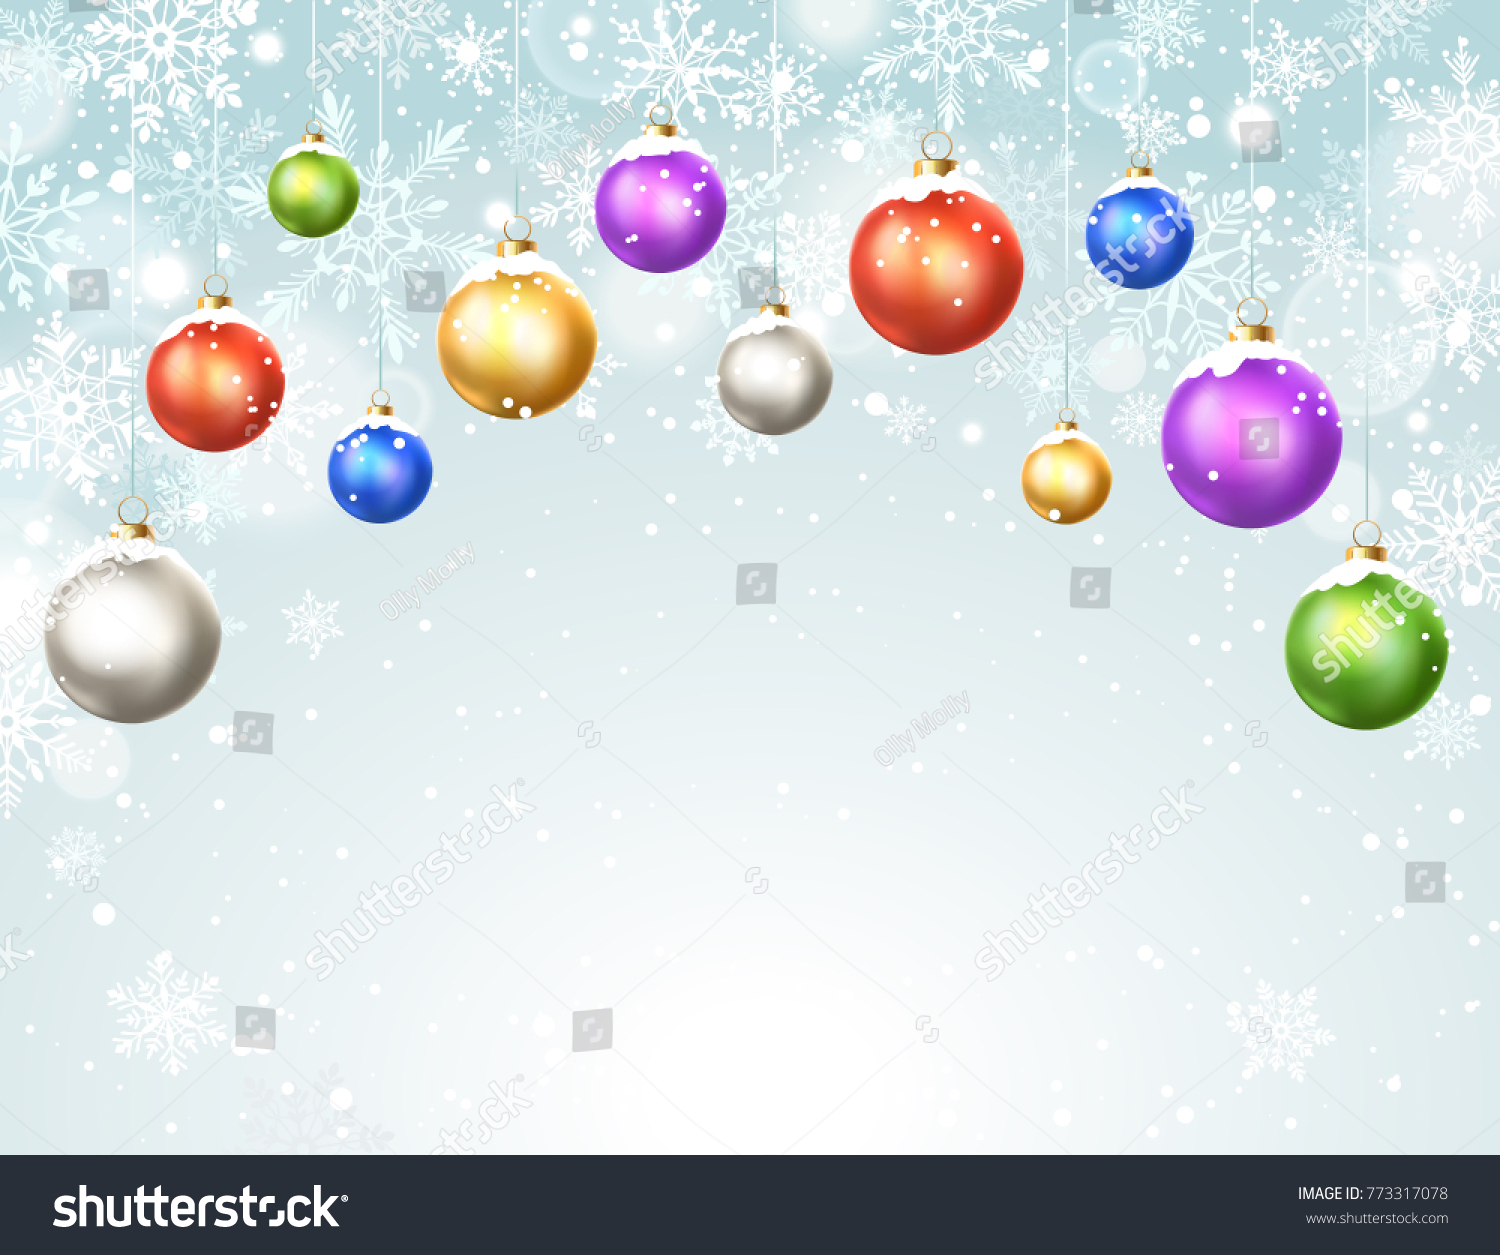 Happy holidays greeting card template modern stock vector happy holidays greeting card template modern new year christmas balls with snowflakes on blue background kristyandbryce Image collections